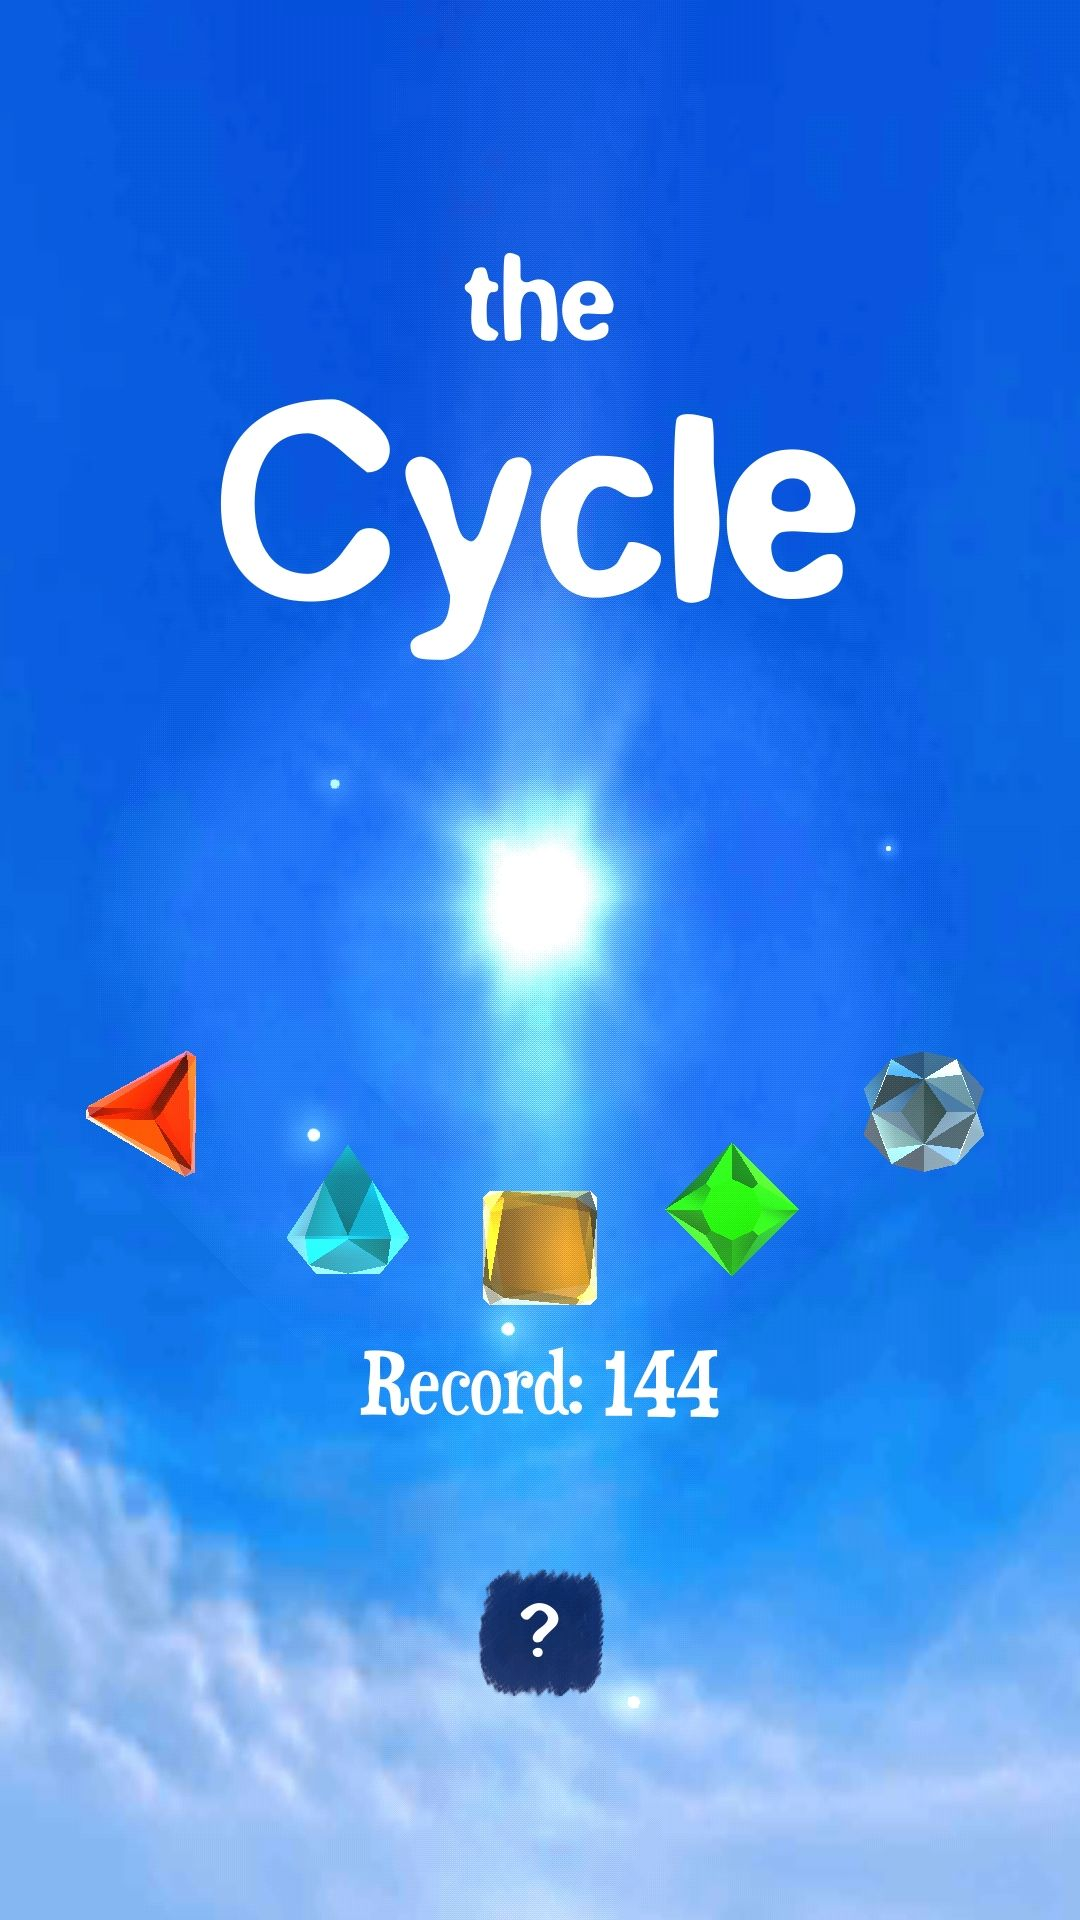 The Cycle - Unity Puzzle Game Template Screenshot 2